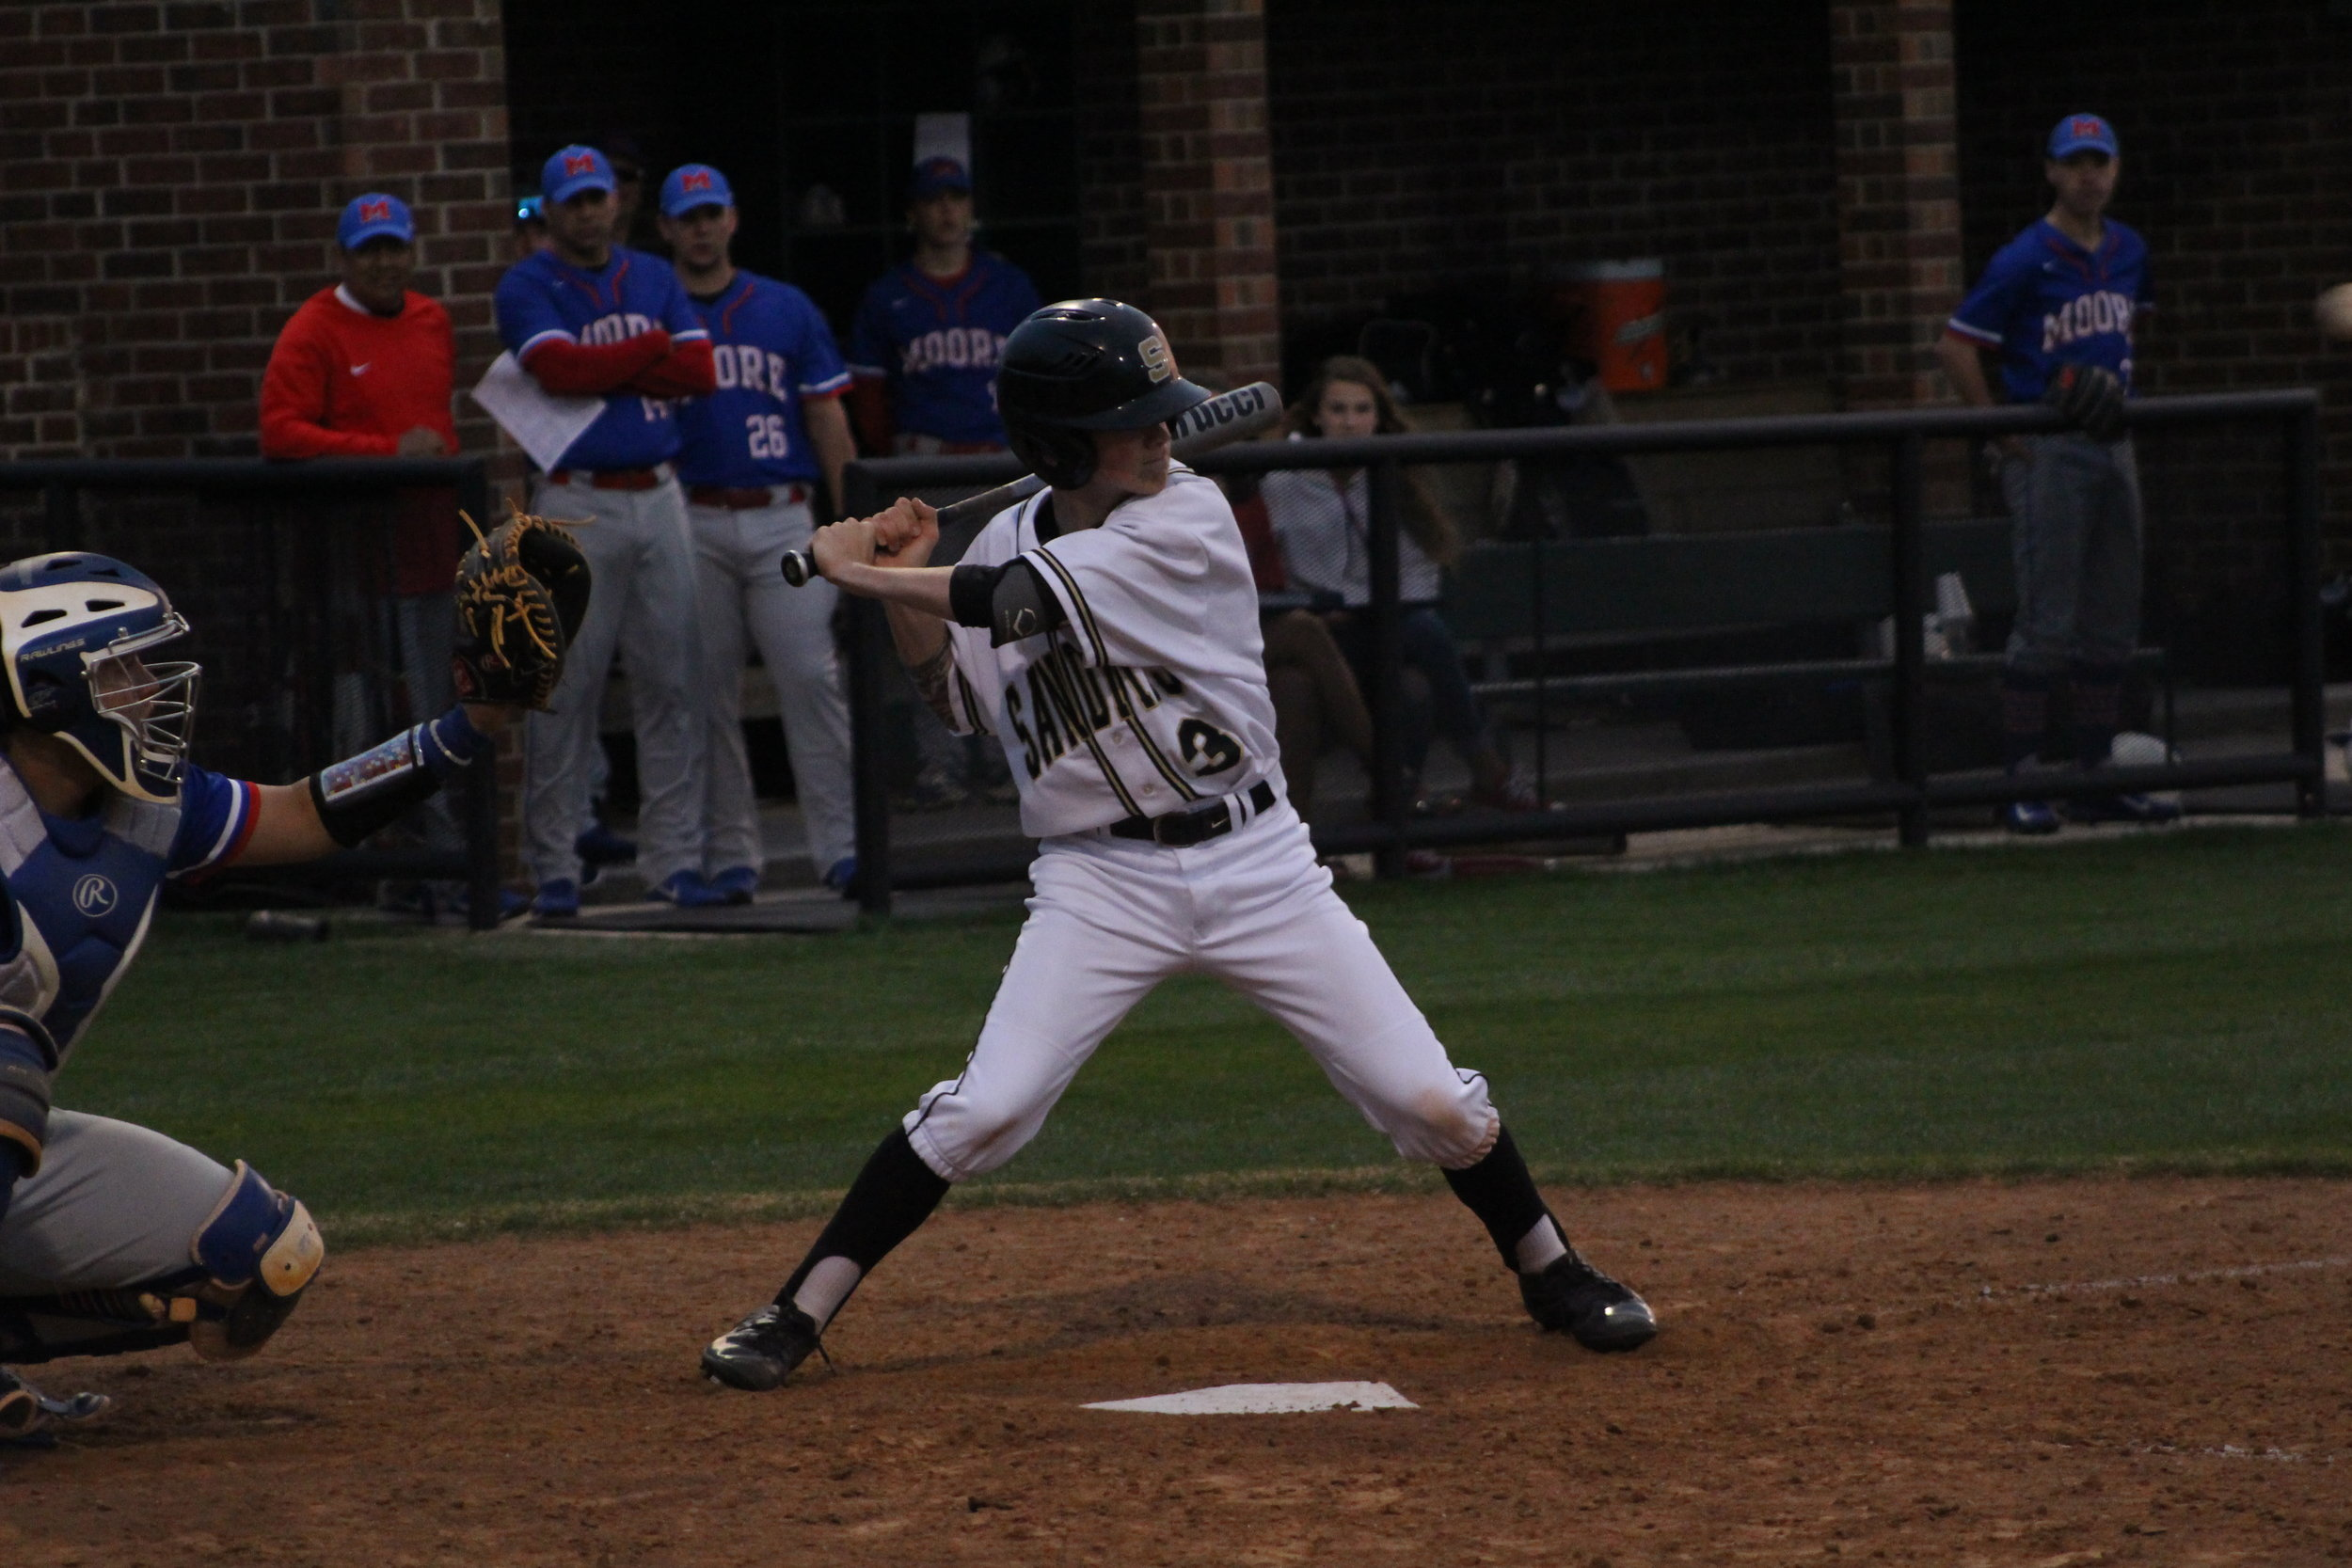 Ty Steelman scored one run and two RBI in the shutout victory. (Photo: Scott Emigh).